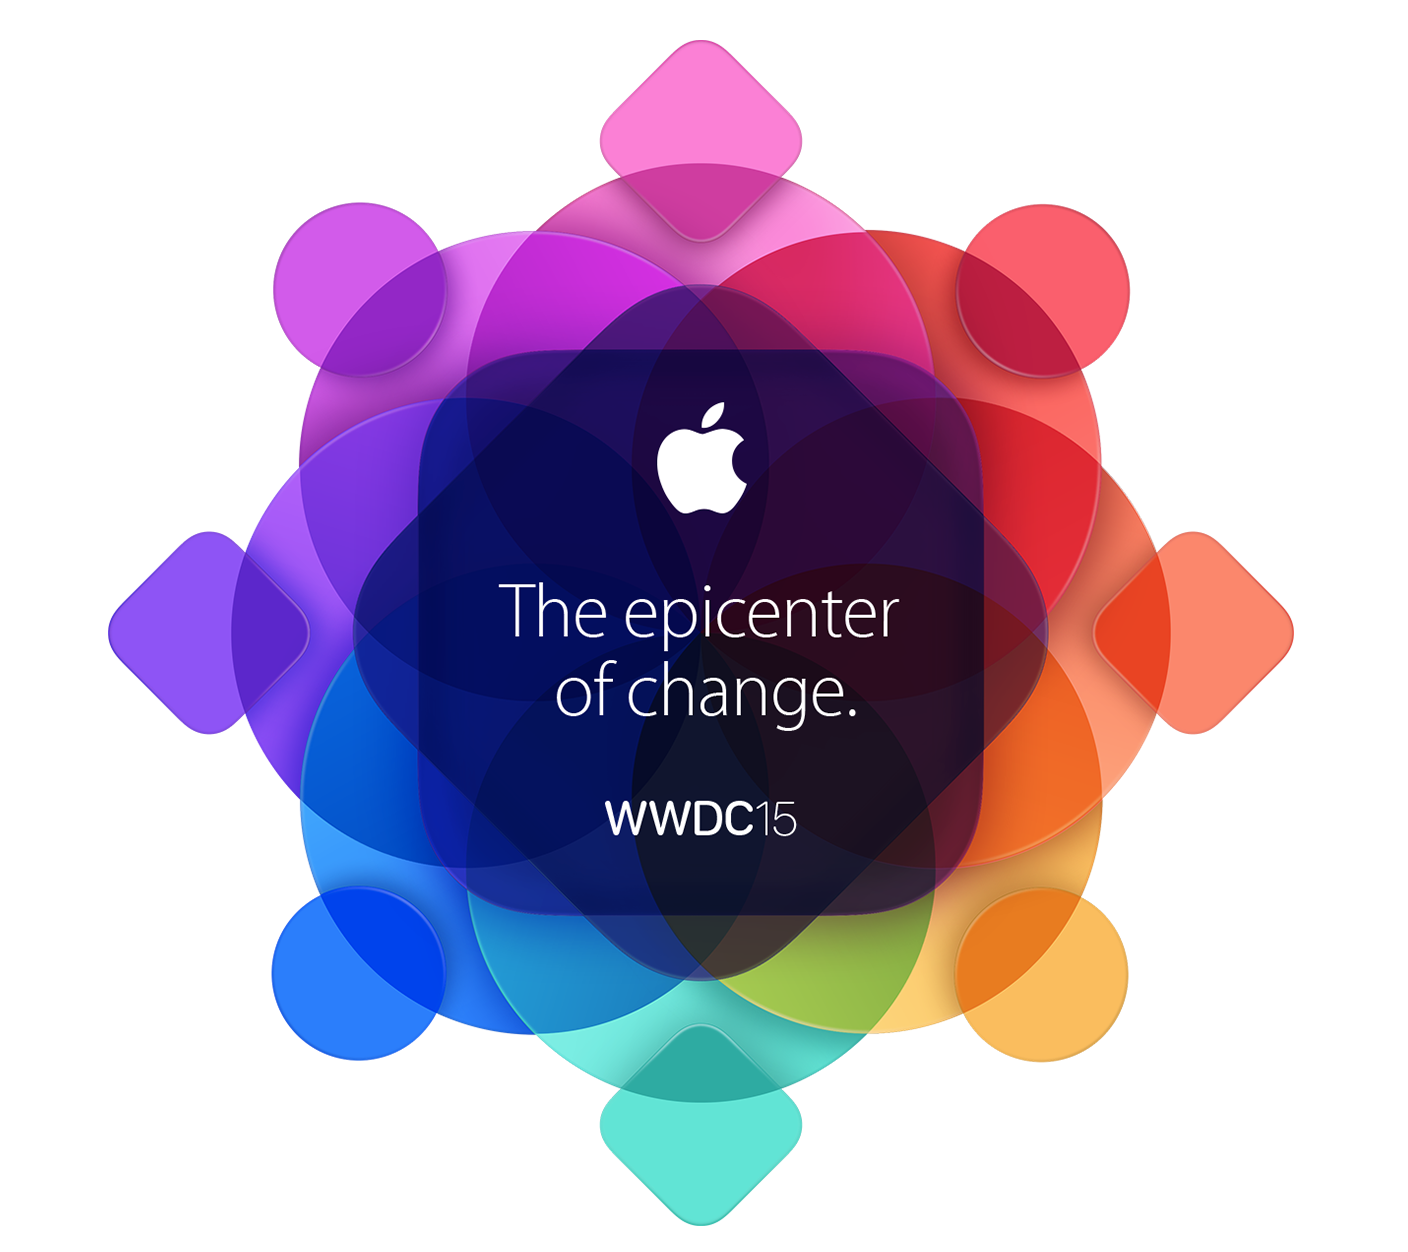 Apple Worldwide Developers Conference #WWDC15 startet am 8. Juni 2015.